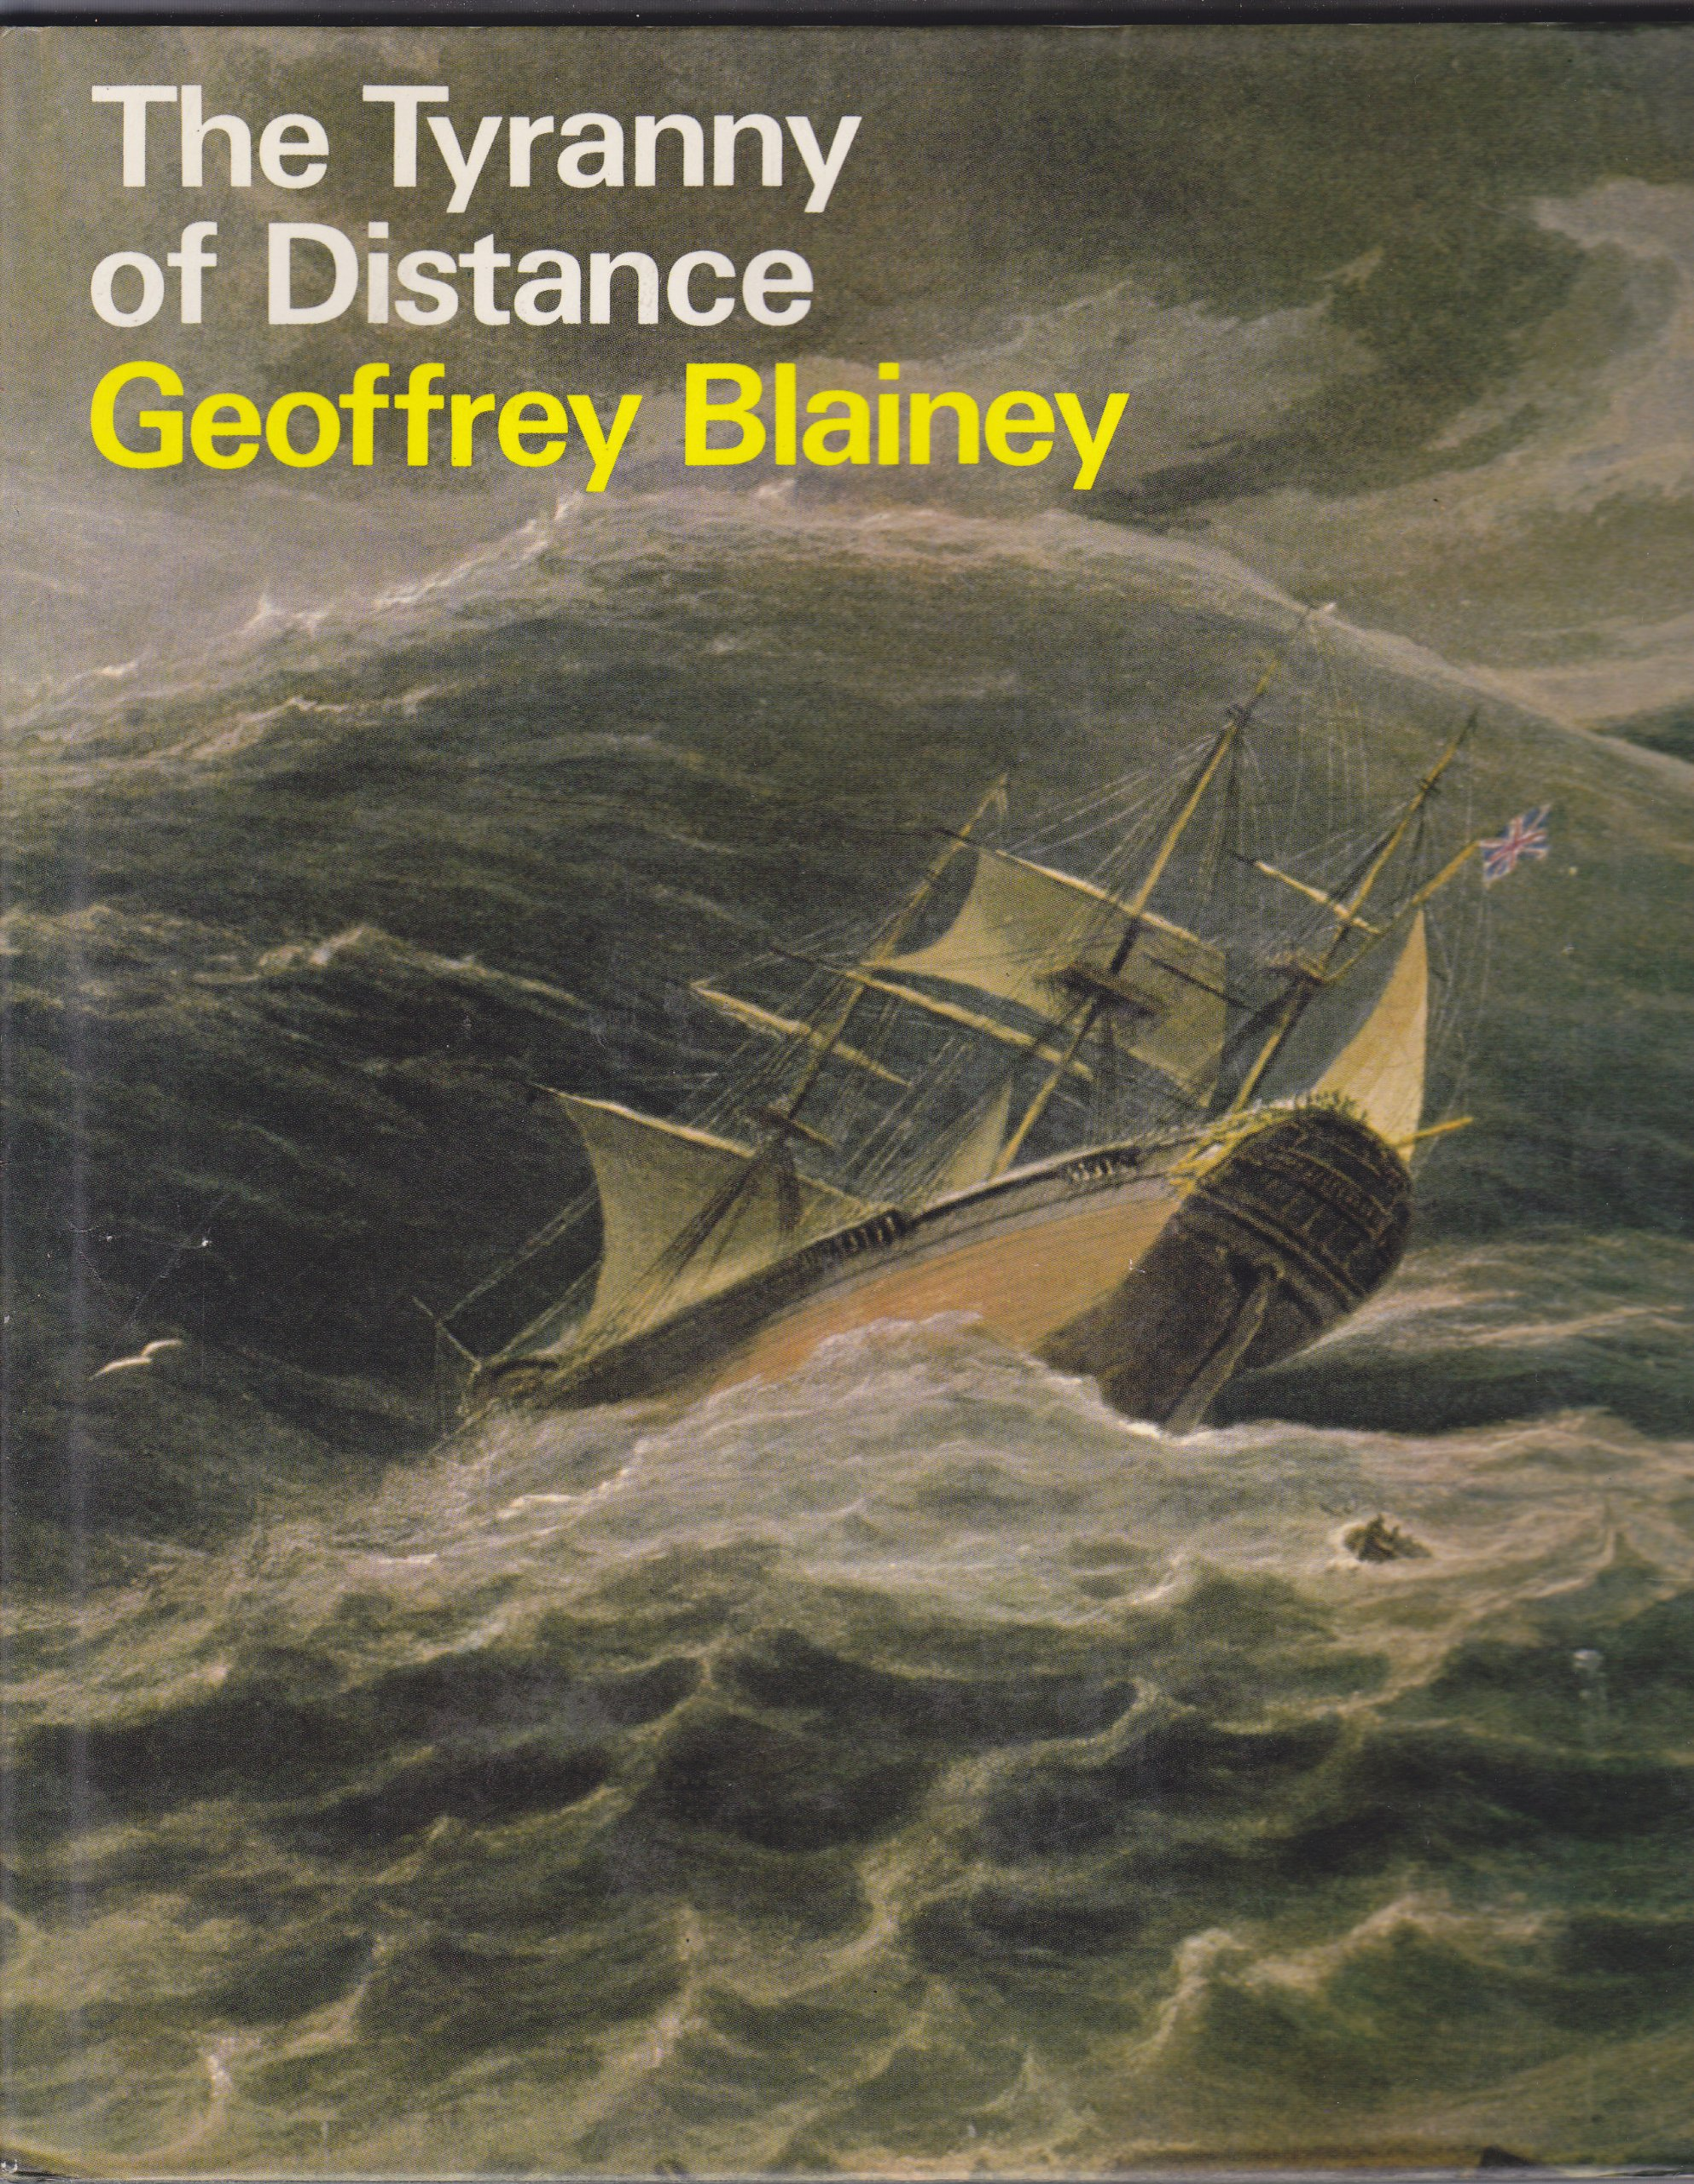 The Tyranny of Distance, 1975 edition